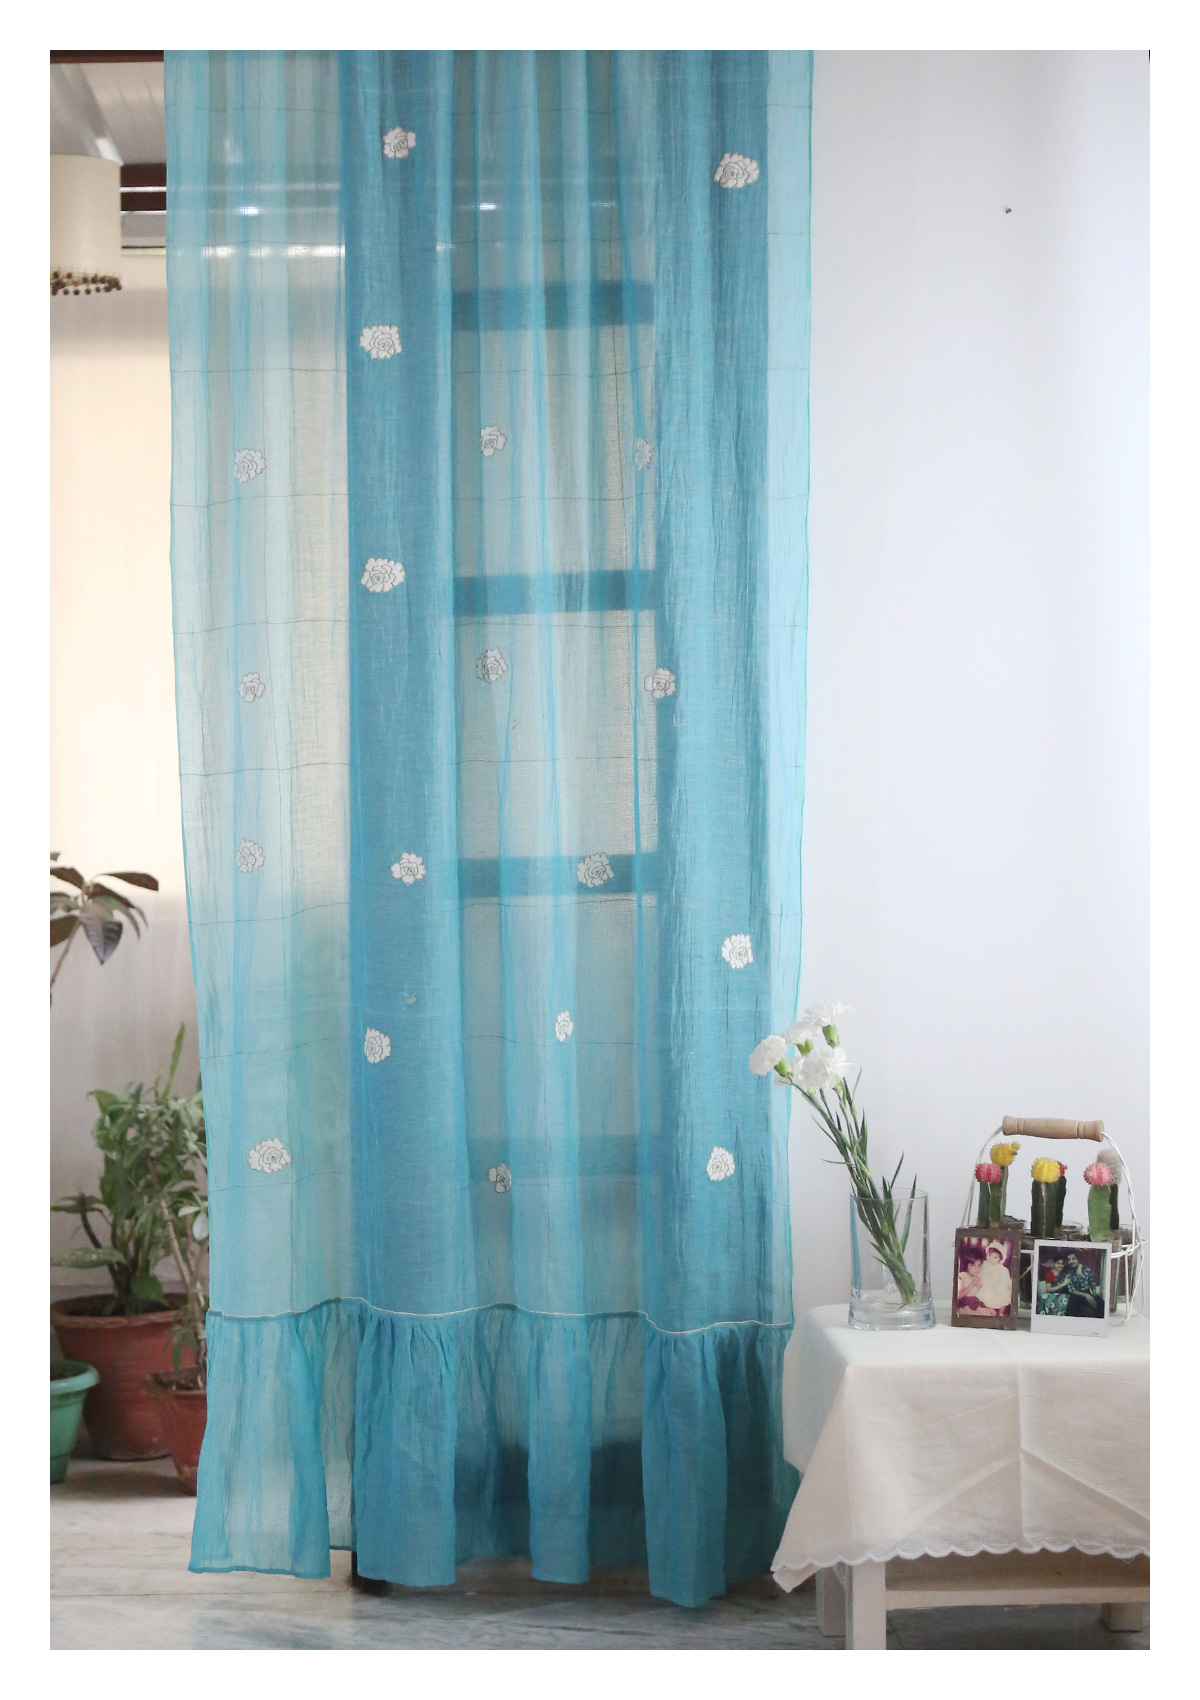 Punarvasu Aqua-Teal Sheer Curtains- Set of 2